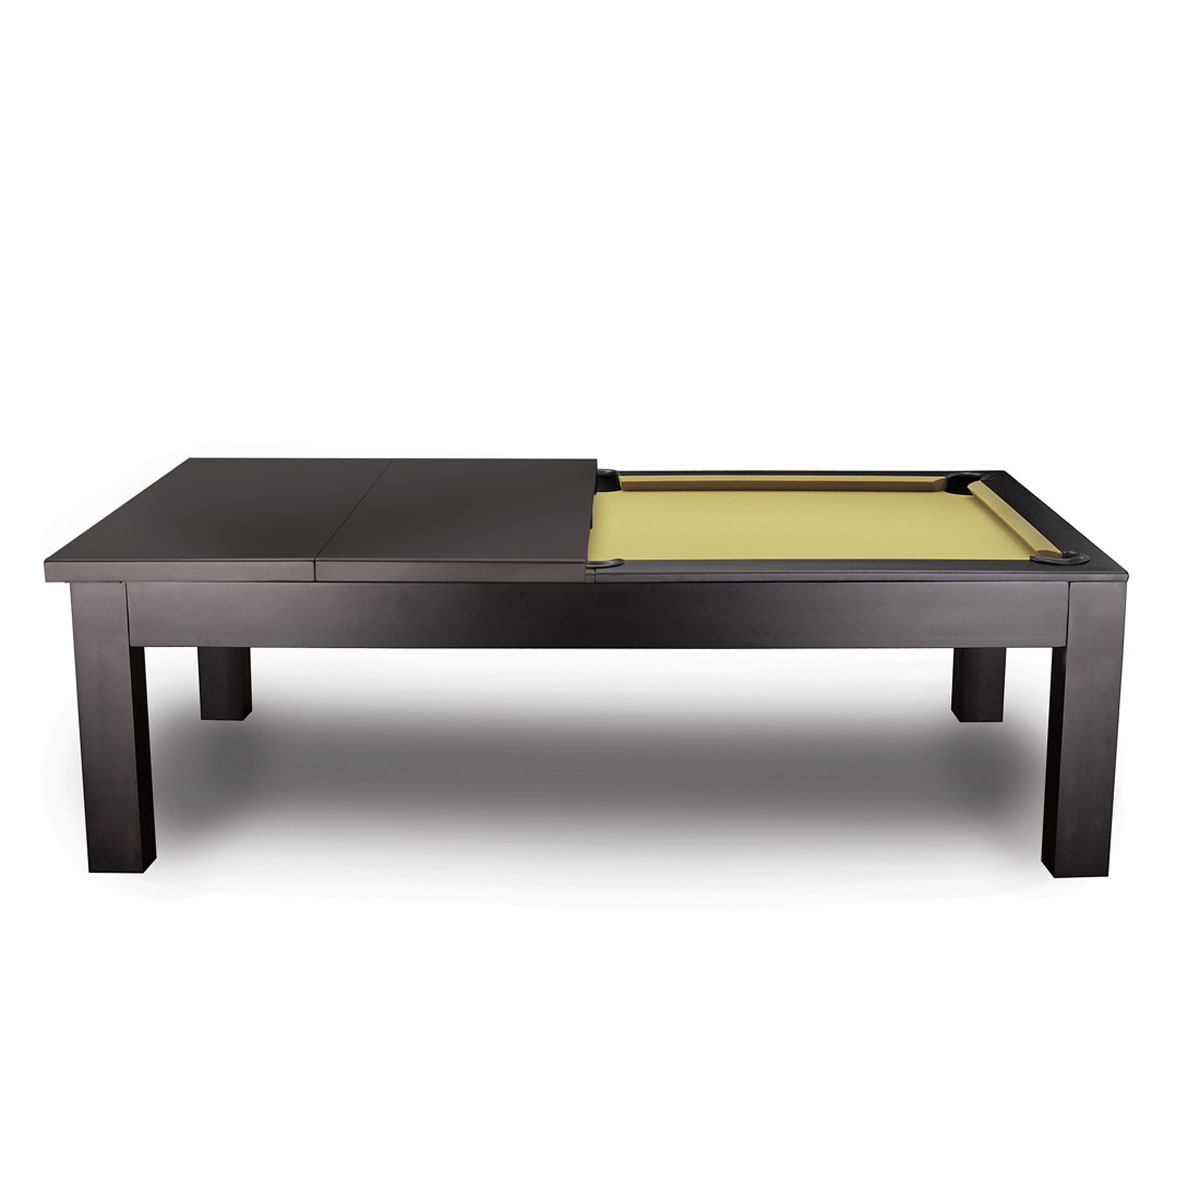 Imperial Penelope With Dining Top Walnut Pool Table (Sizes 7u0027 Or 8u0027)